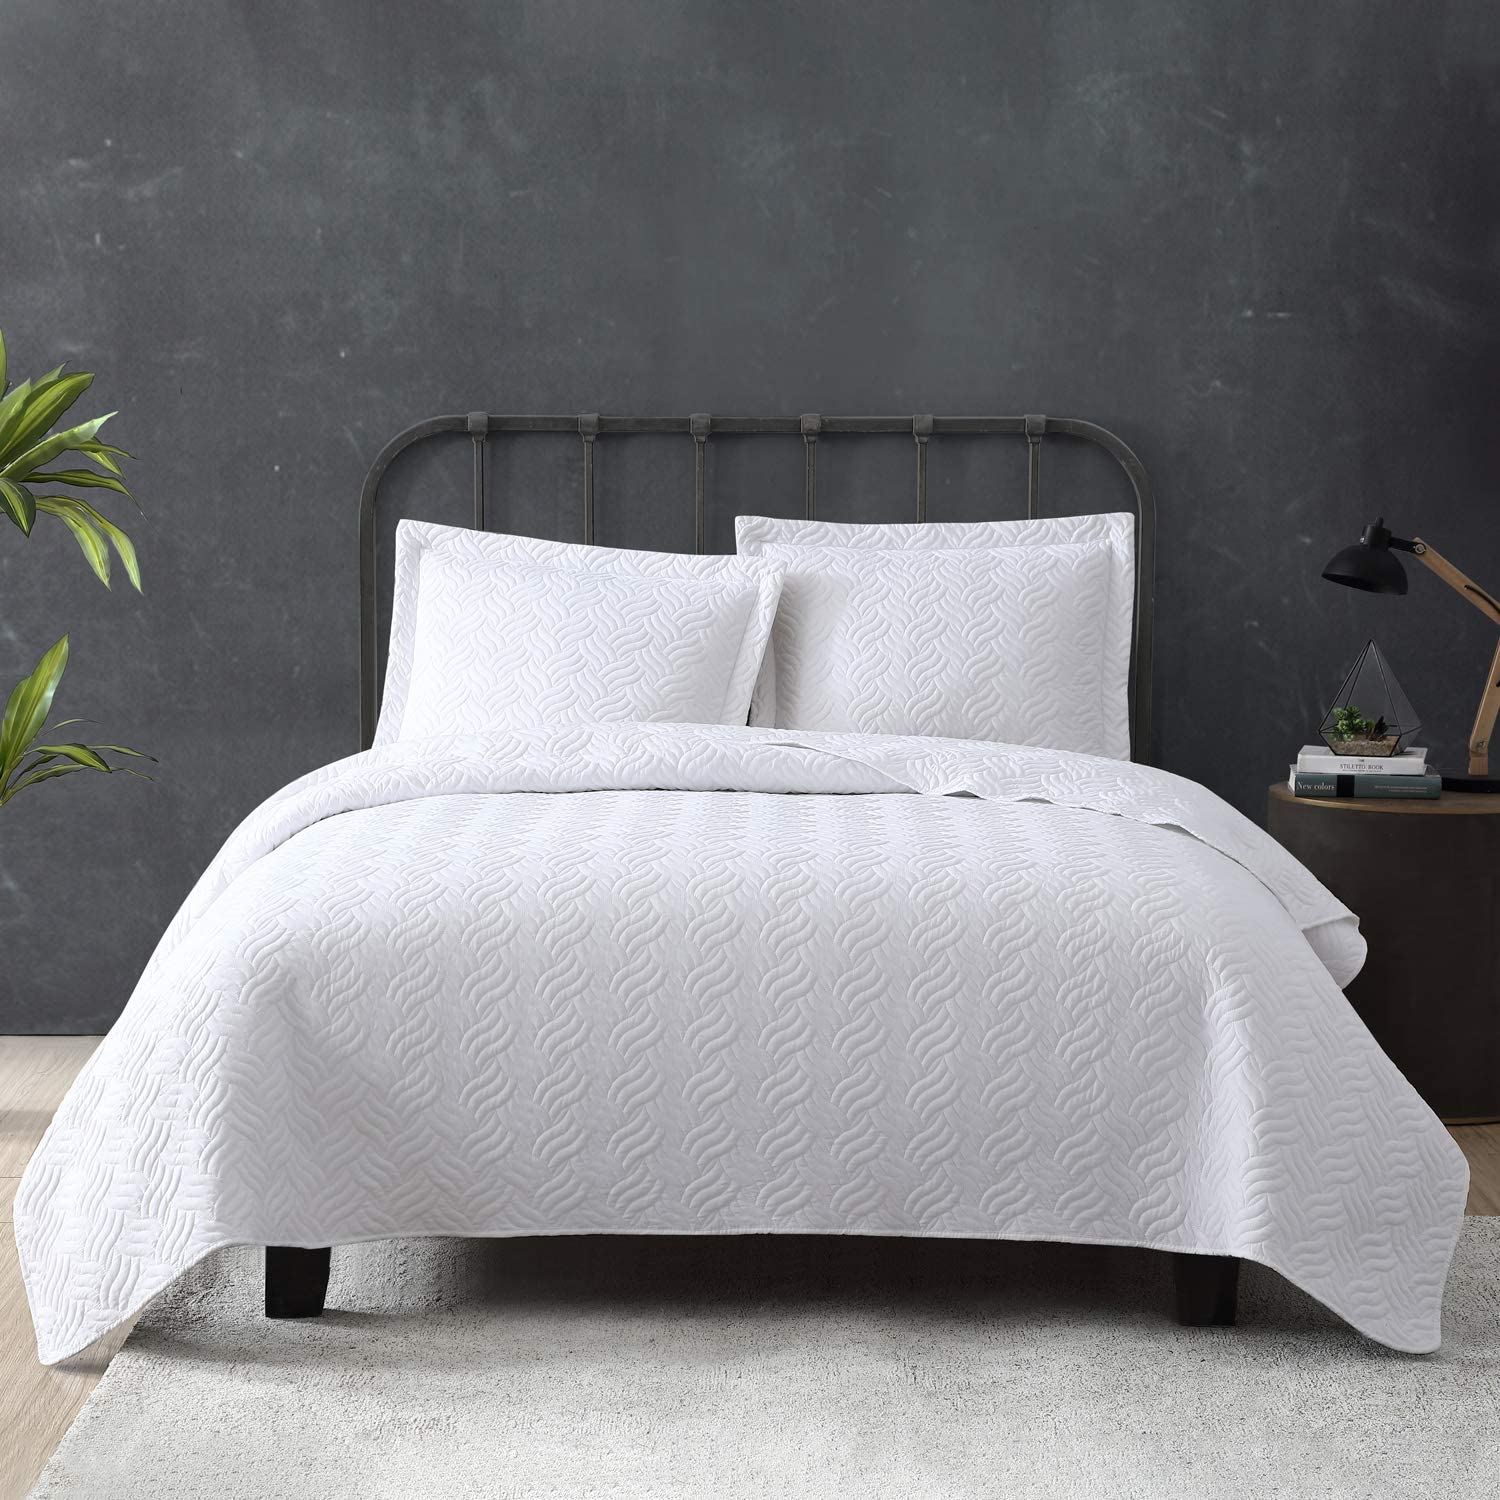 Tempcore Tampa Mall Quilt Quality inspection Set Coverlet King Size 3 White Piece Microfiber L